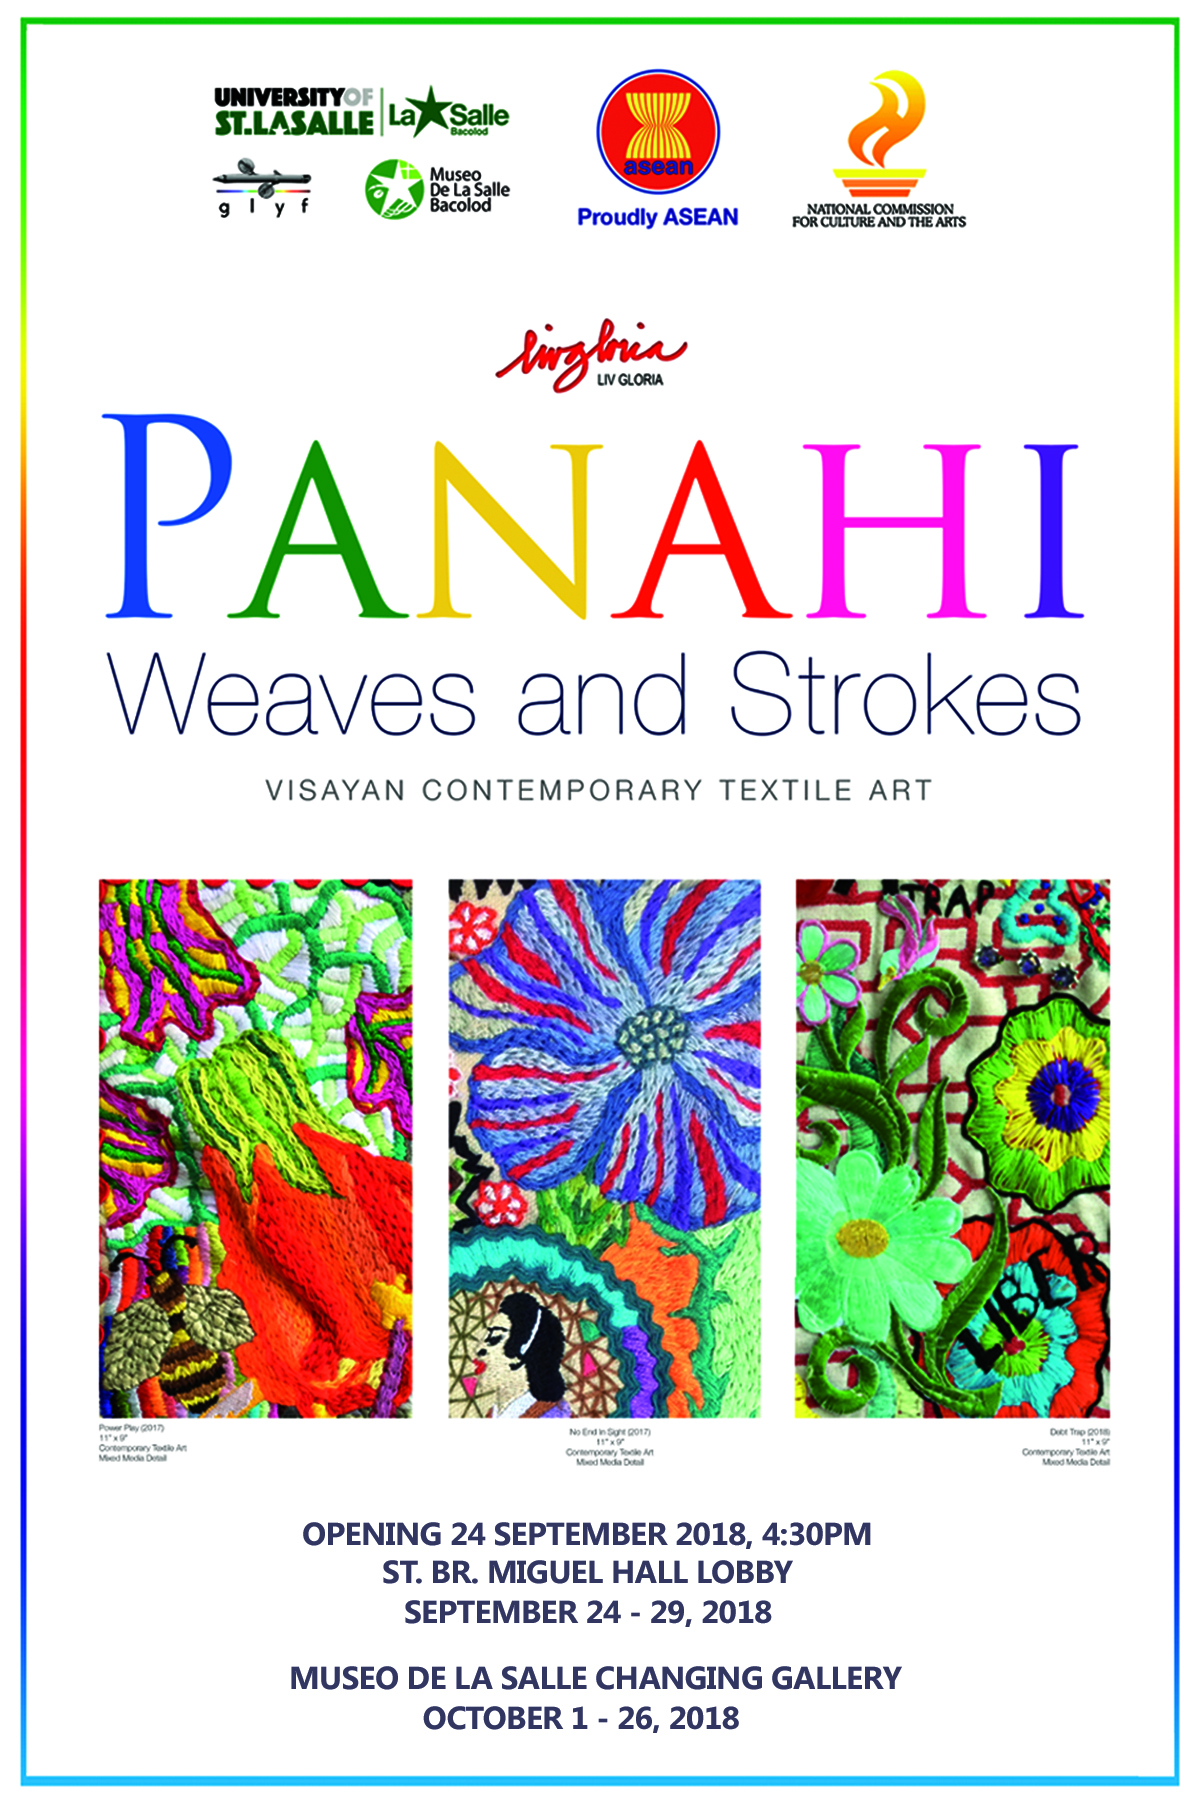 PANAHI-Weaves-and-Storkes.JPG